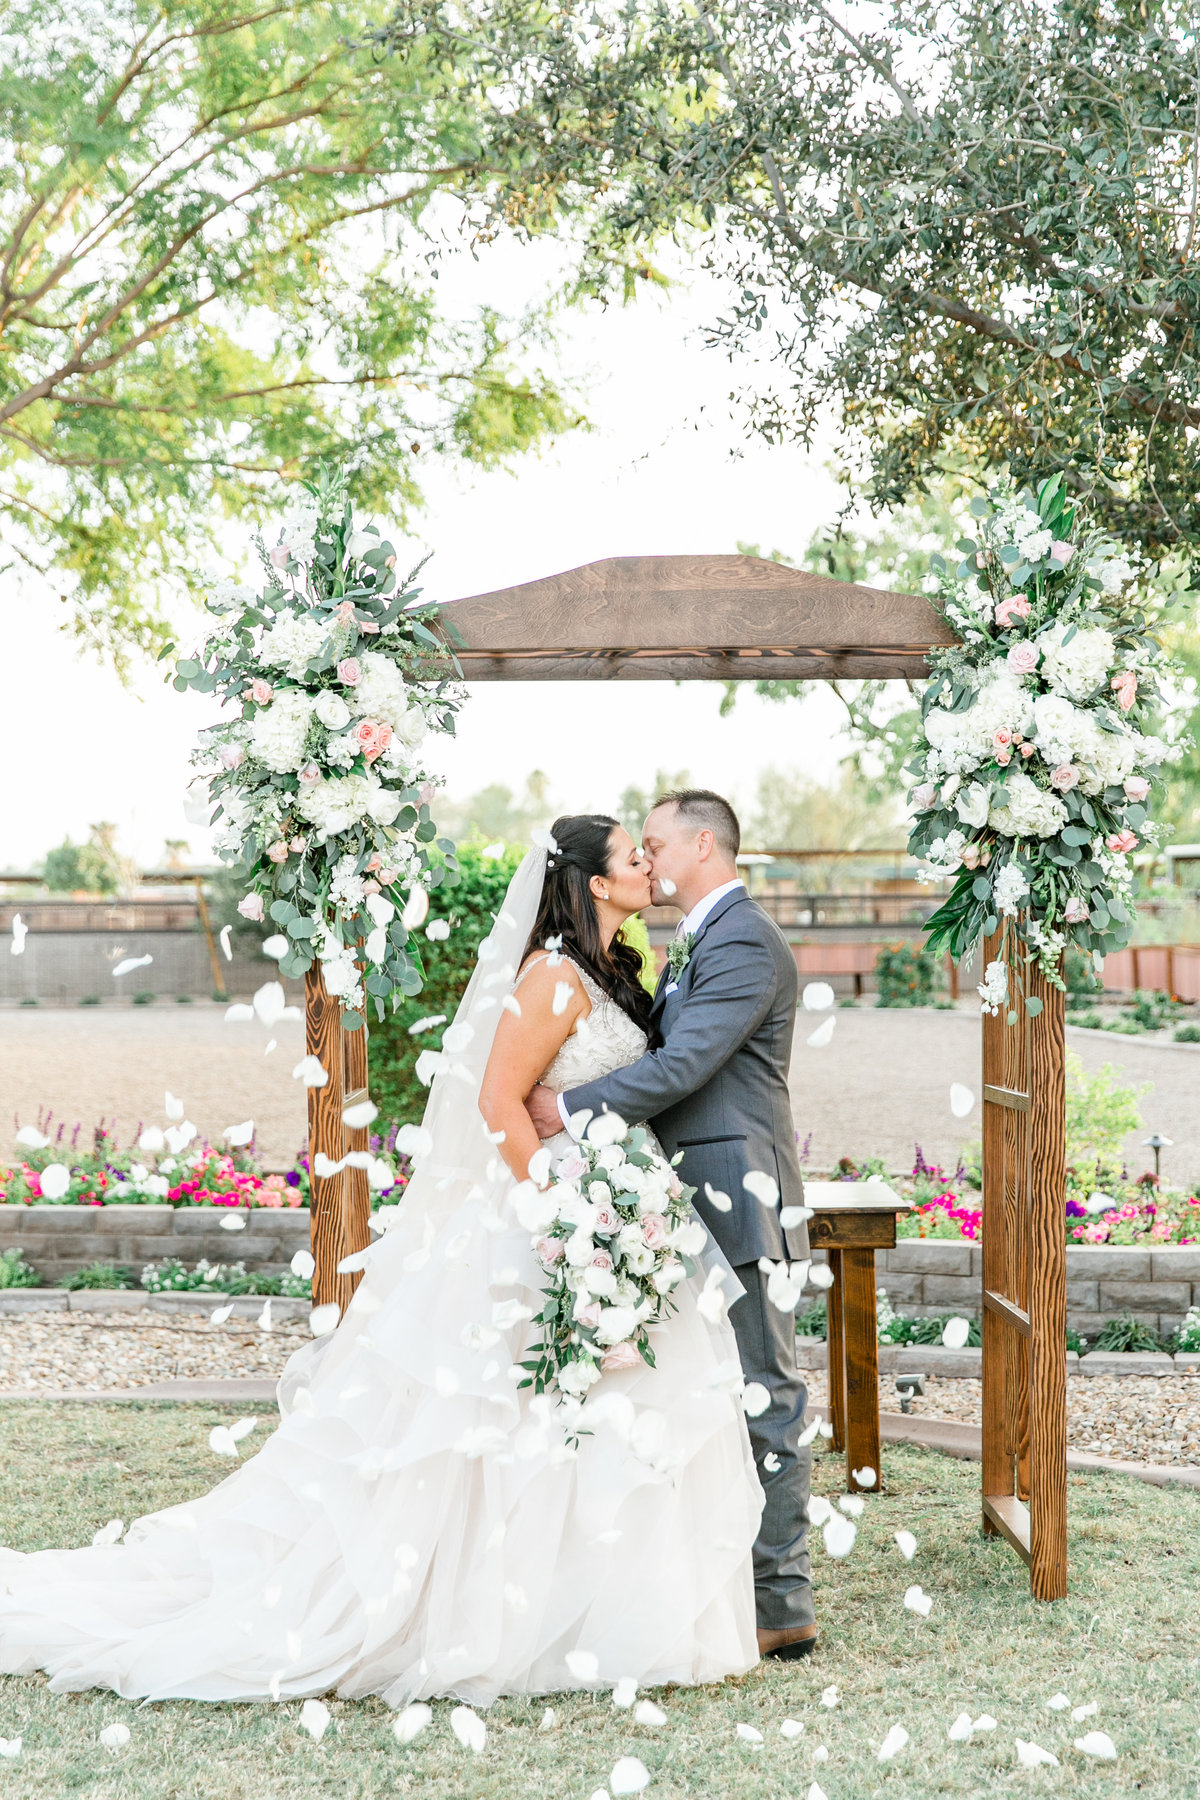 Karlie Colleen Photography - Glendale Arizona Backyard ranch wedding - Meghan & Ken-458